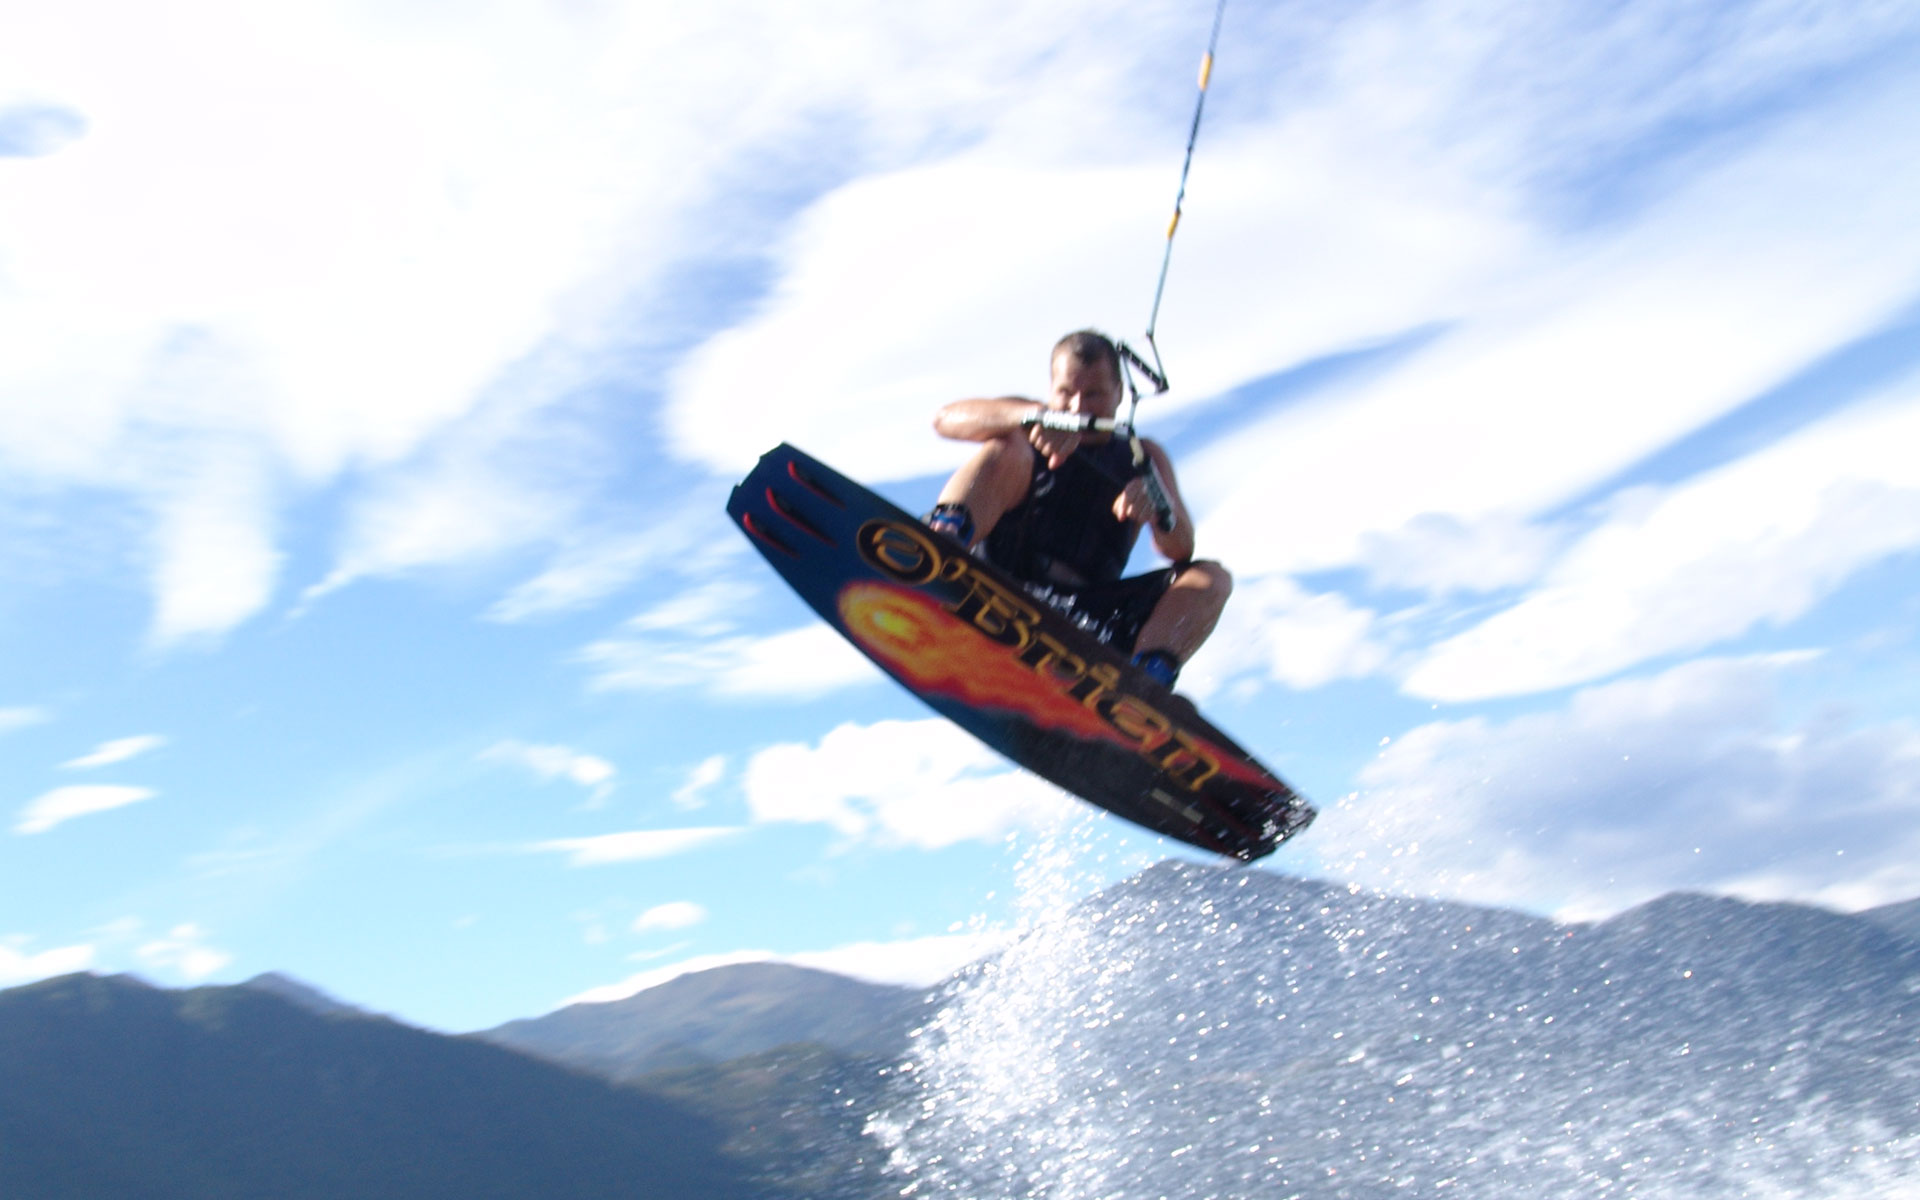 WAKEBOARDER.NL